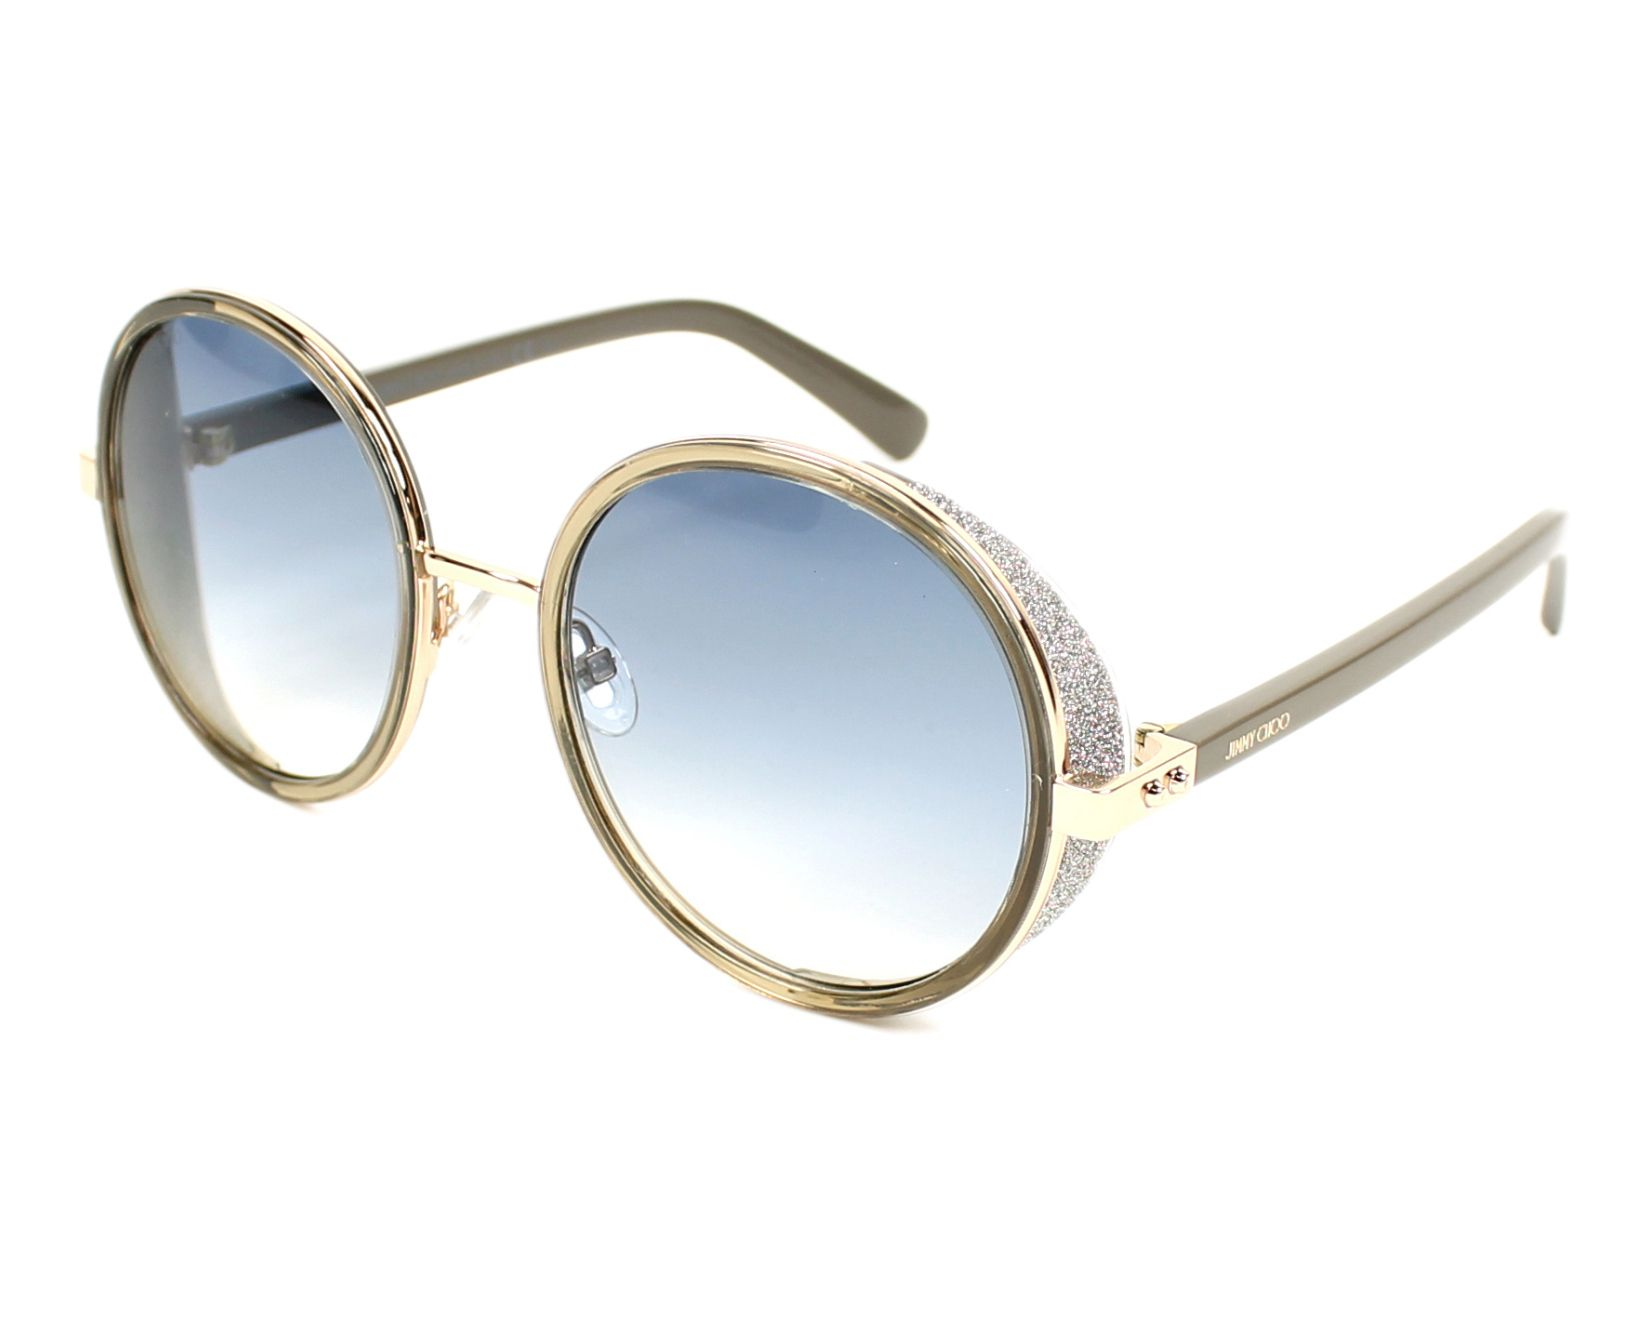 19d8036090e7 Sunglasses Jimmy Choo ANDIE-S S9R U3 54-21 Gold Grey profile view